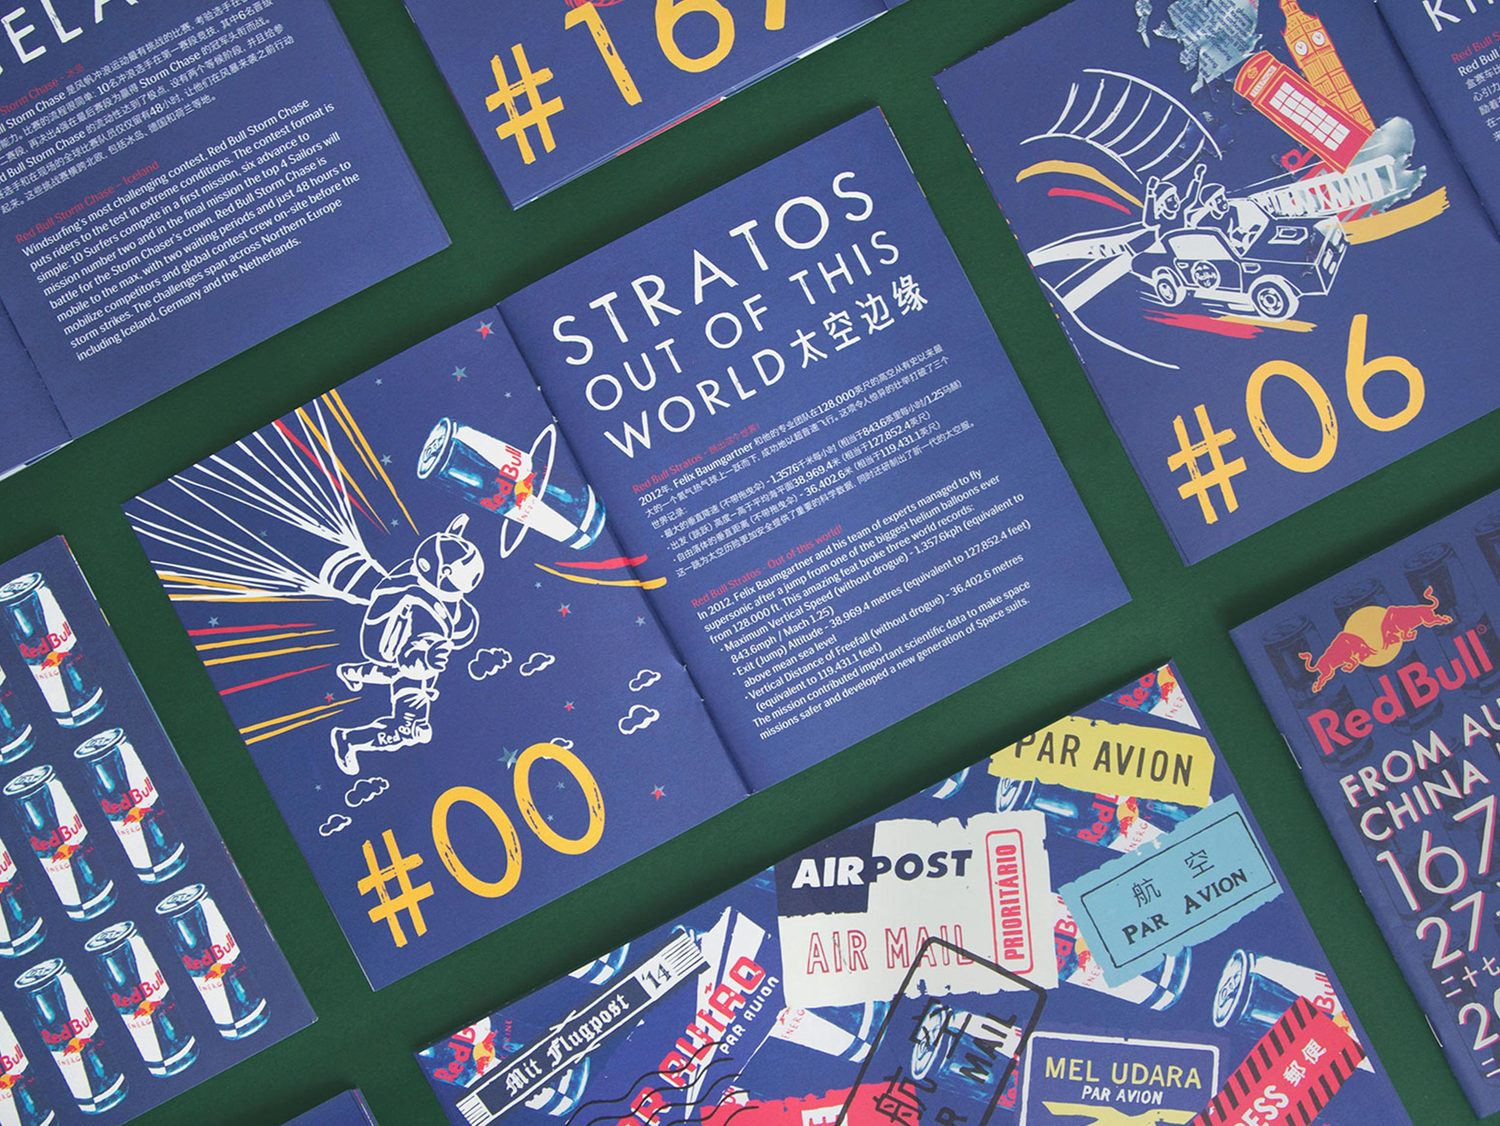 We highlighted the brands' milestones in a zine.